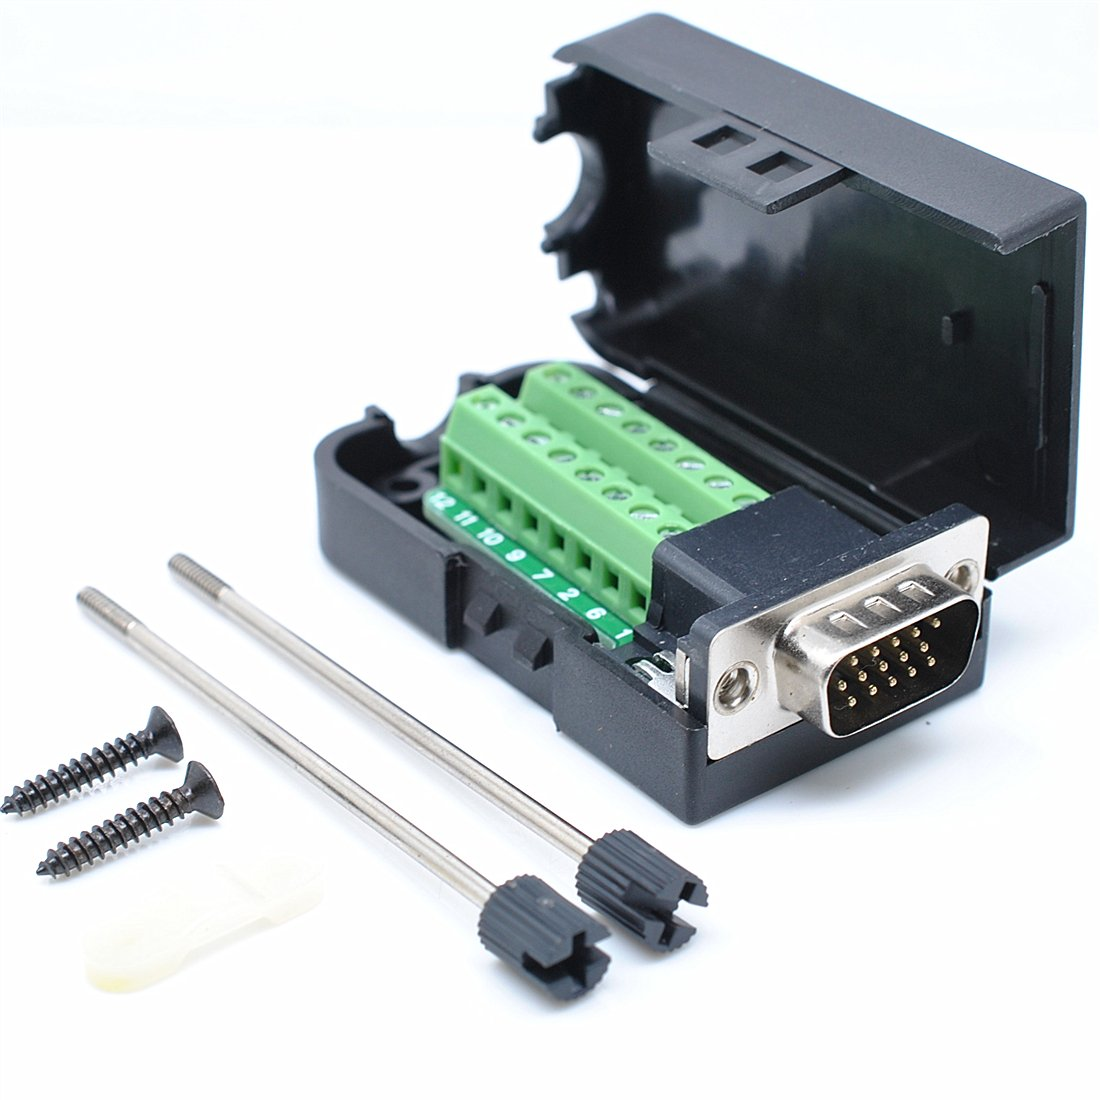 Oiyagai DB15 3+9 D-SUB VGA Male 3Row 15Pin Connector Adaptor Screw Terminal Breakout Board Free Welding